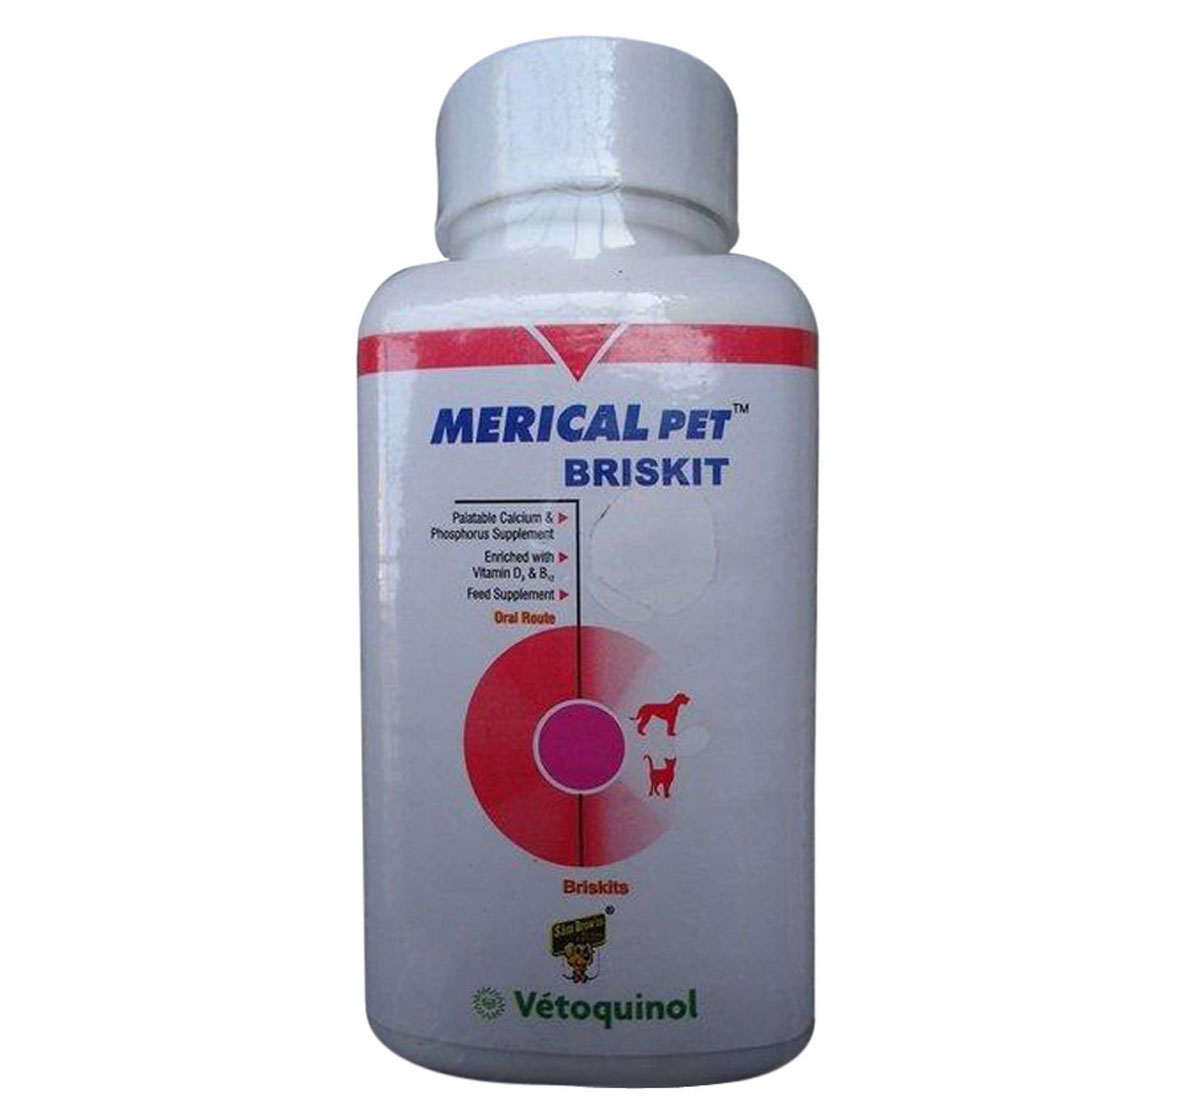 Vetoquinol Merical Briskit Calcium Supplement 100 Tablet